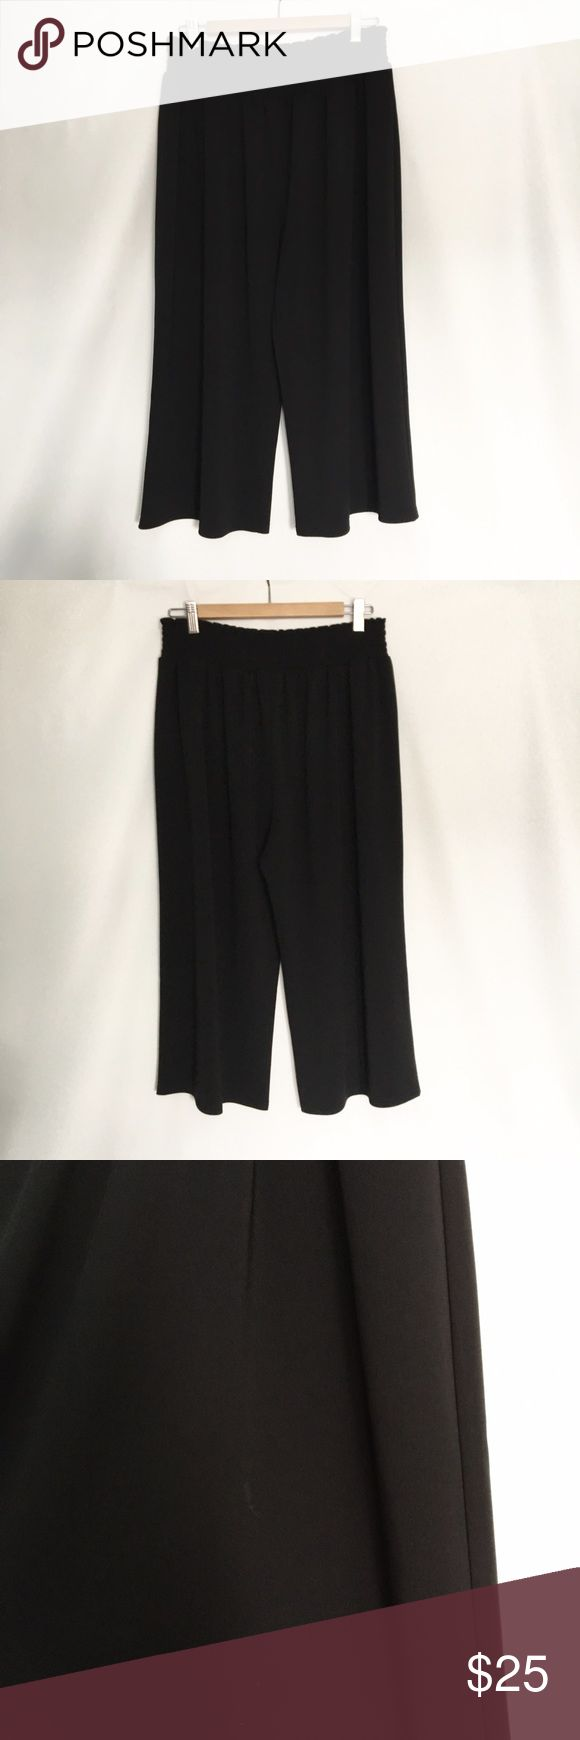 Rafaella Black Culottes Super comfy loose design. Cropped length. As pictured in the last photo. Small area of discoloration on the left pant leg. Rafaella Pants Trousers